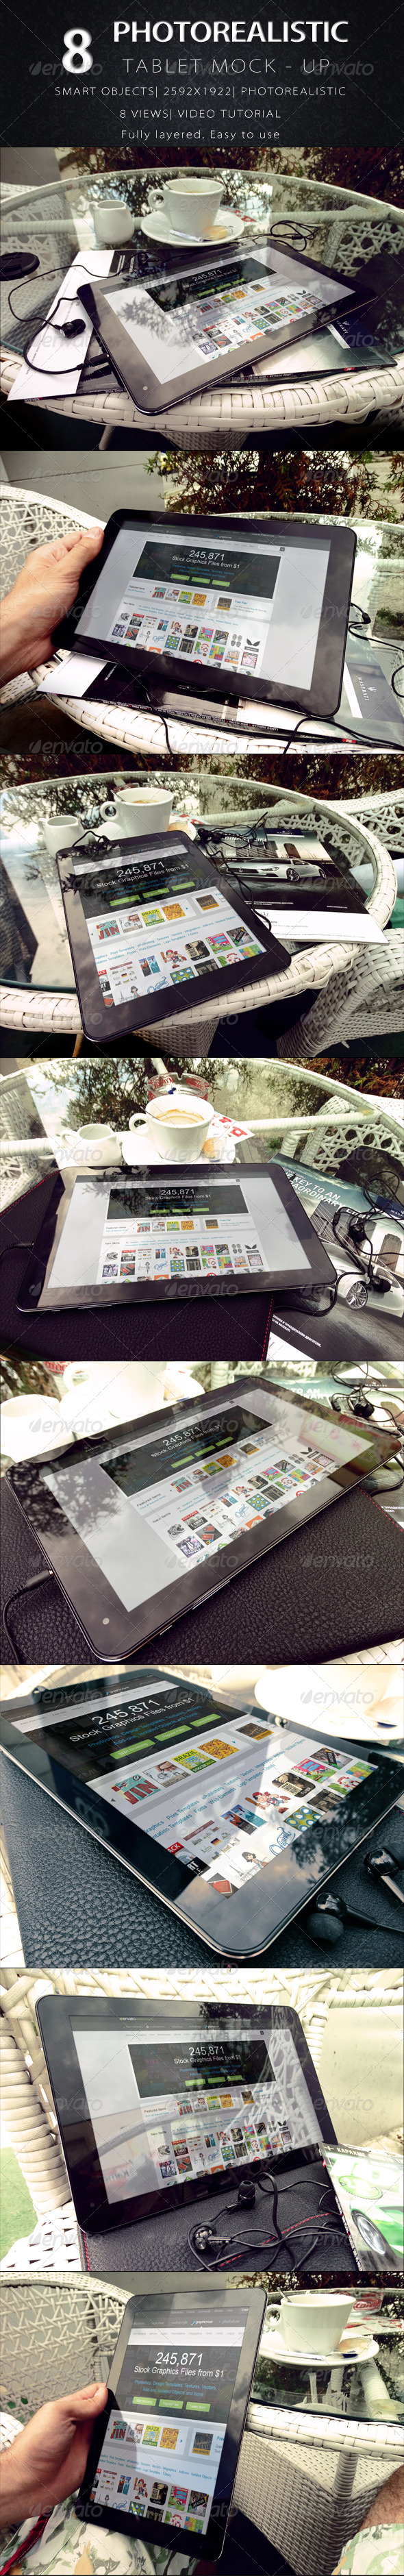 GraphicRiver Photorealistic Tablet Mock Up V.2 8688963